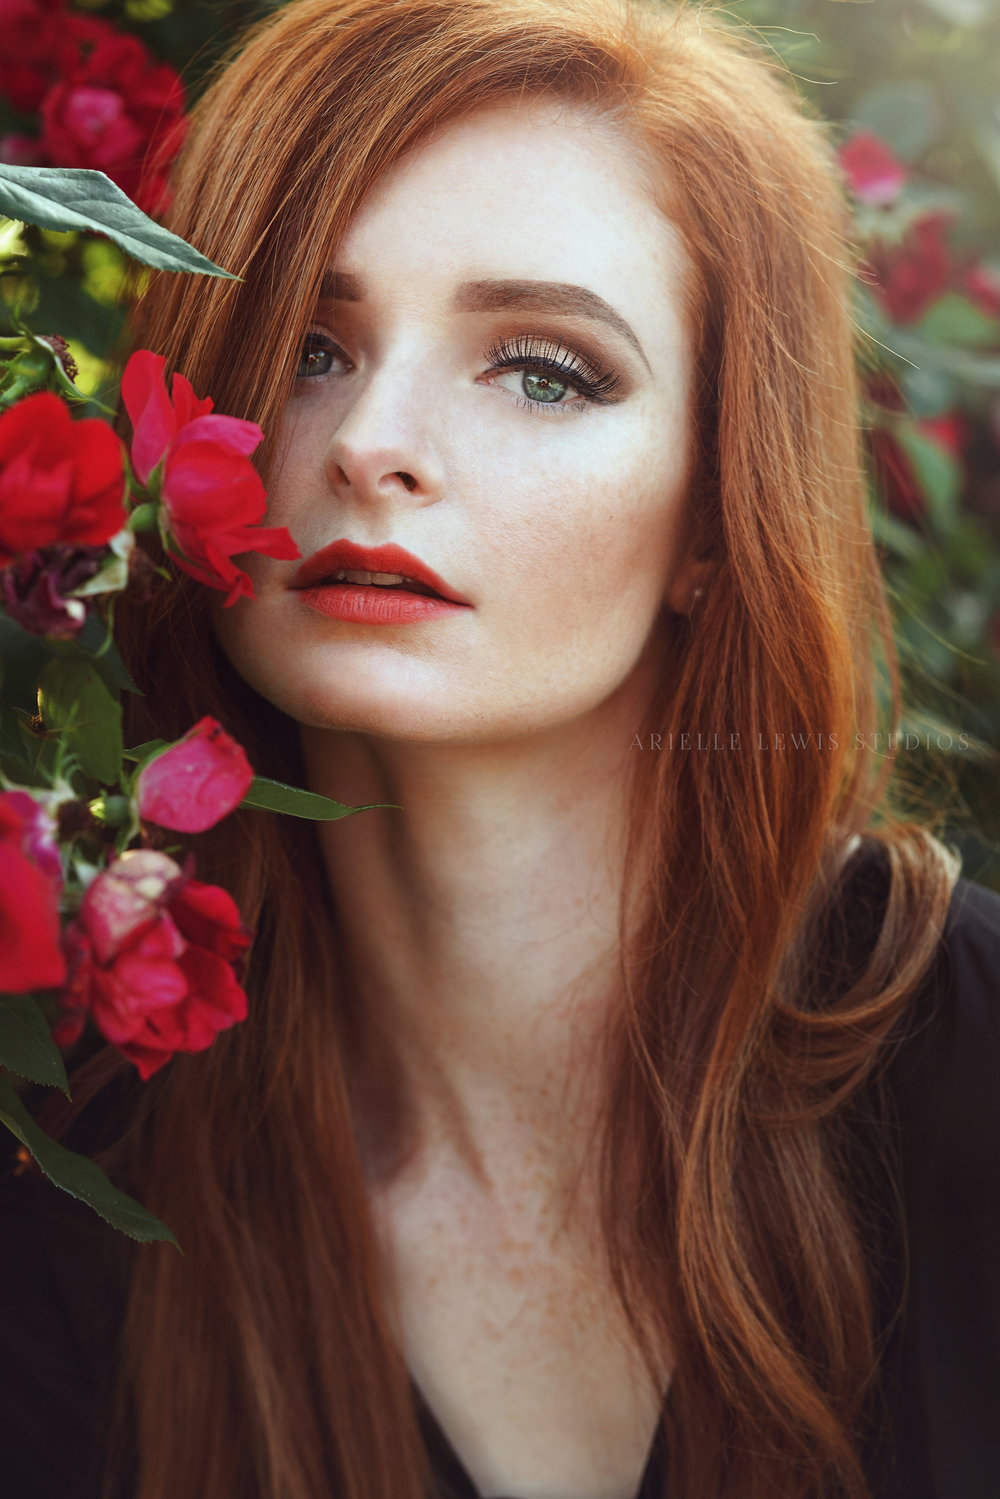 redhead_ethereal_portrait_photography.jpg